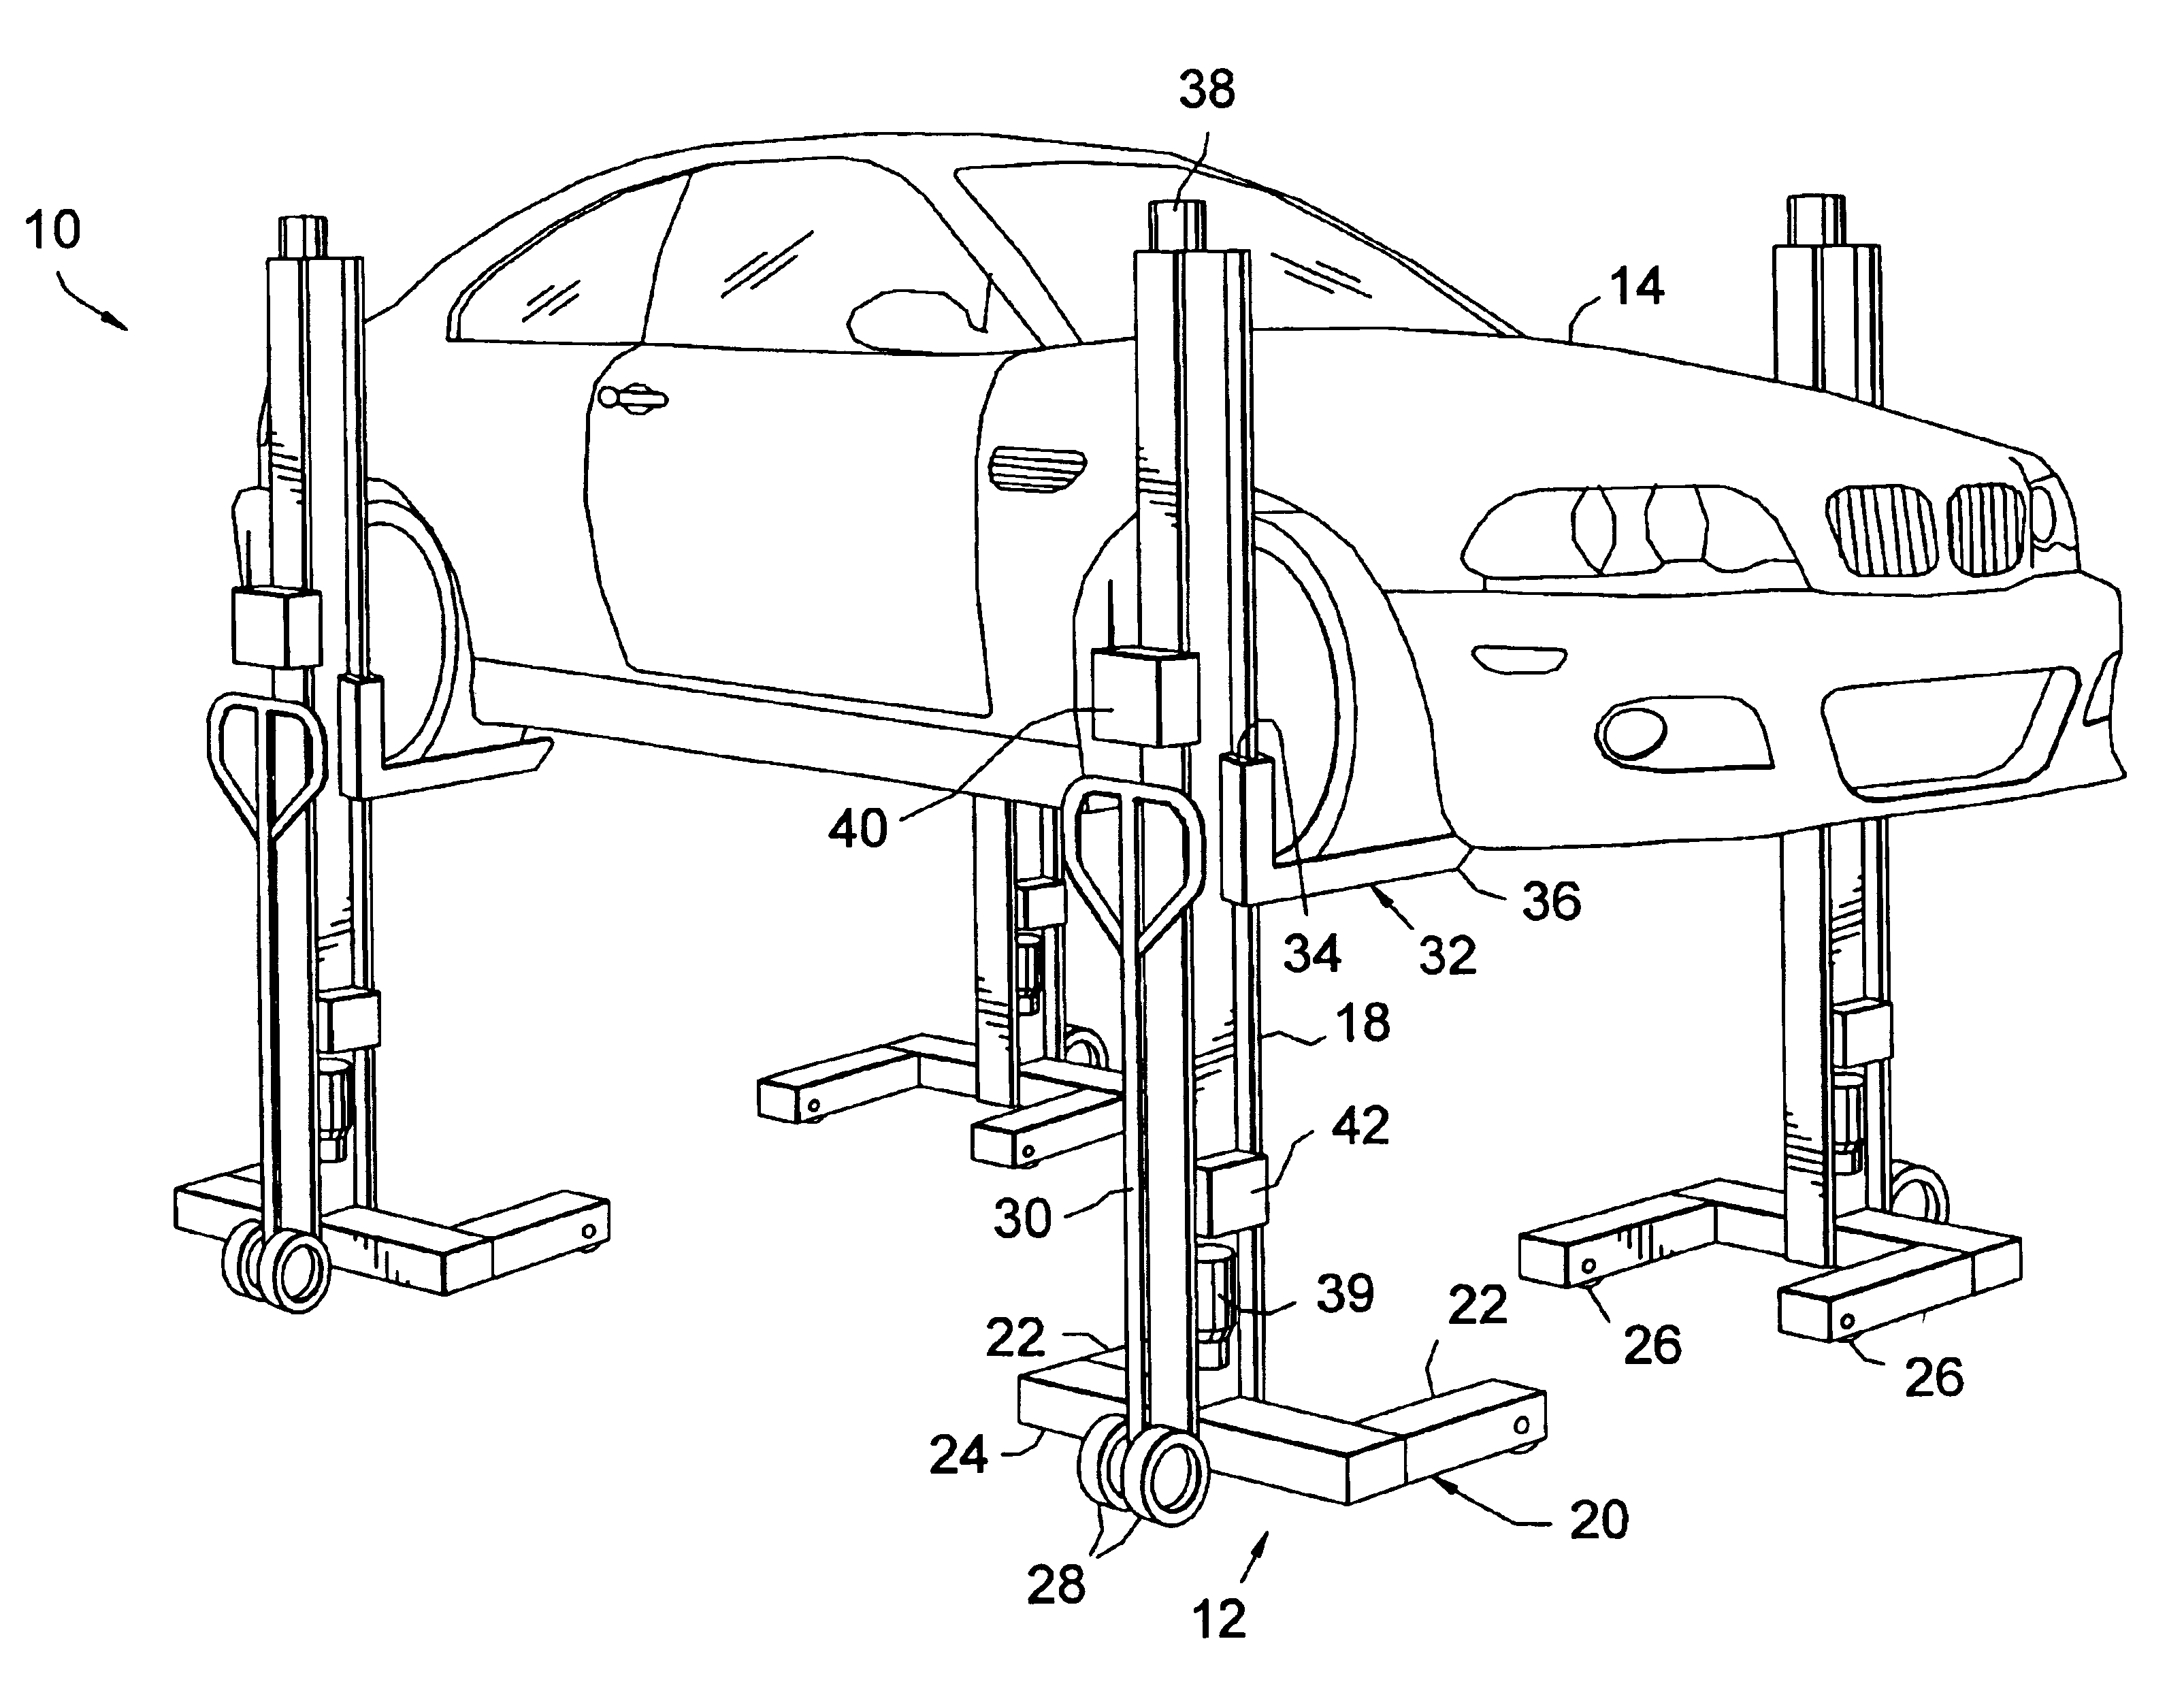 11 automotive lifts and other lifting equipment aese Car lift plans